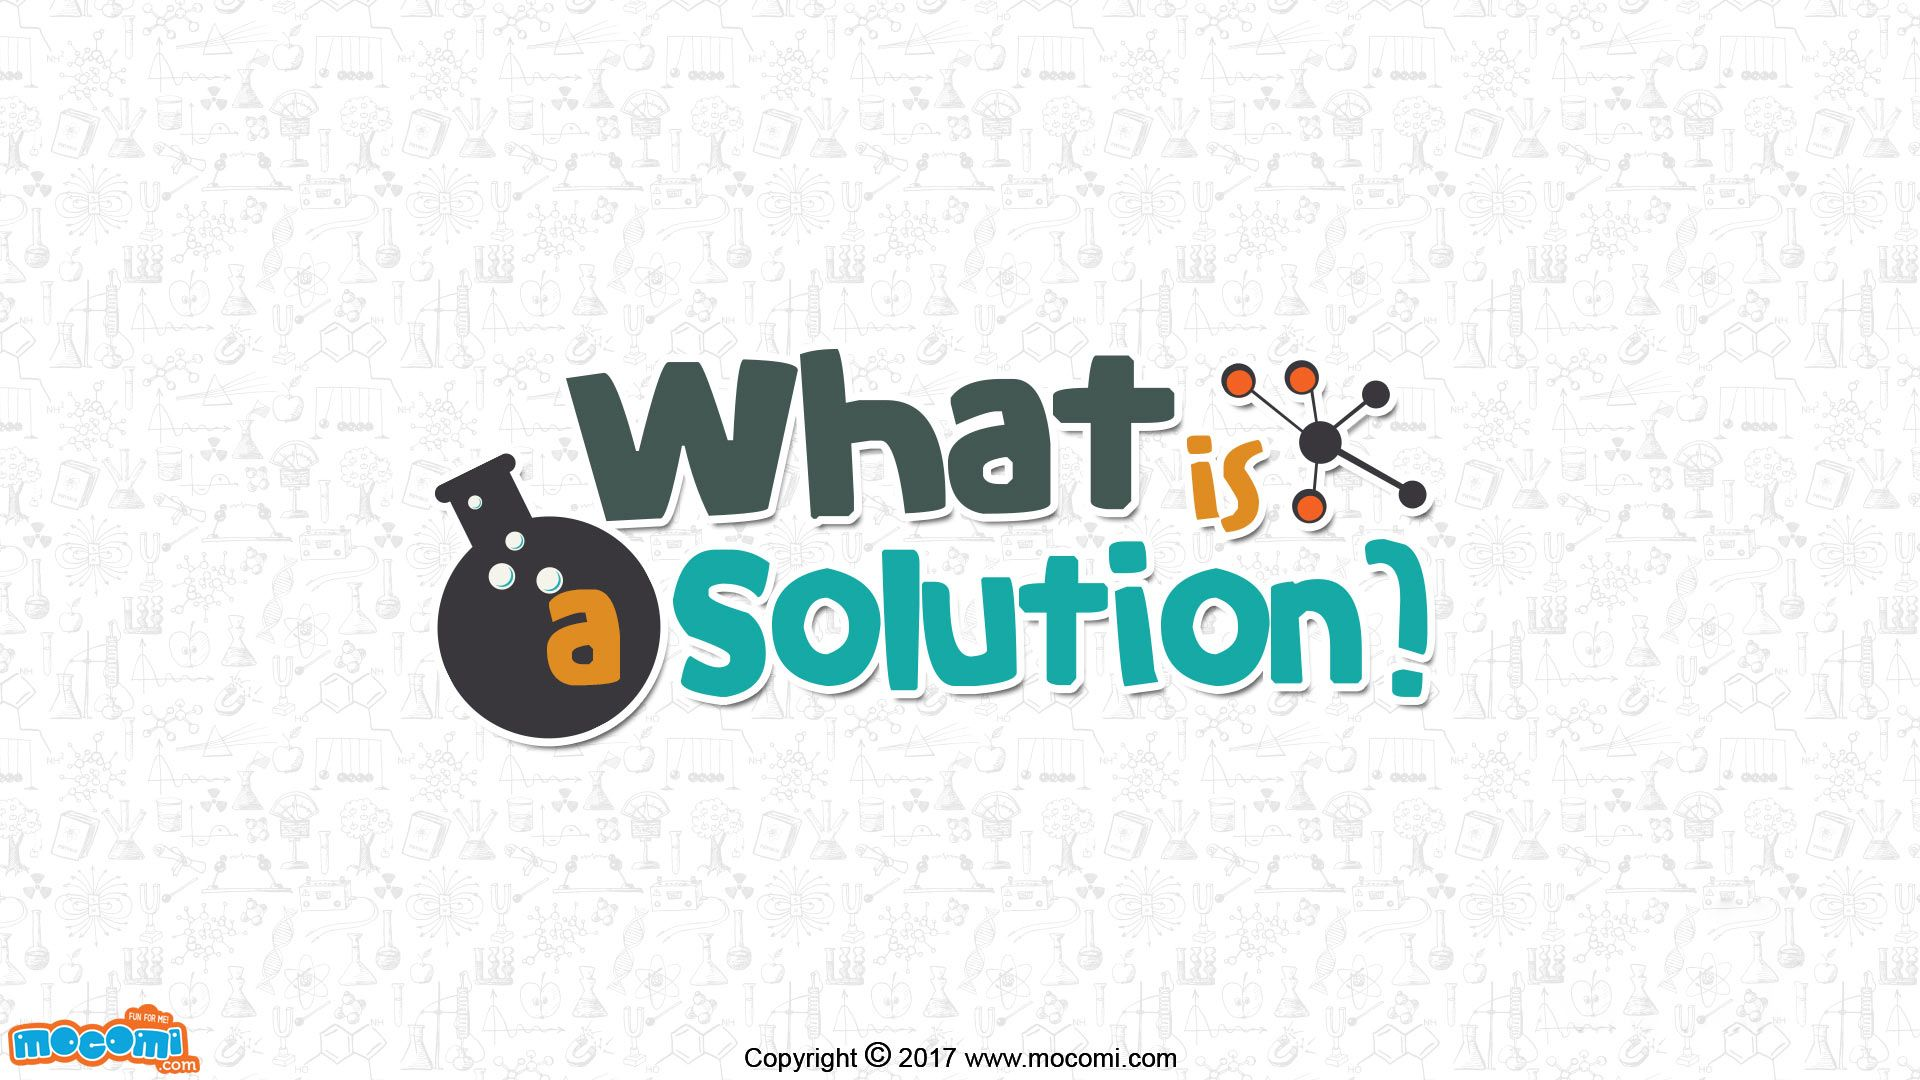 A solution is a homogeneous mixture of solutes dissolved